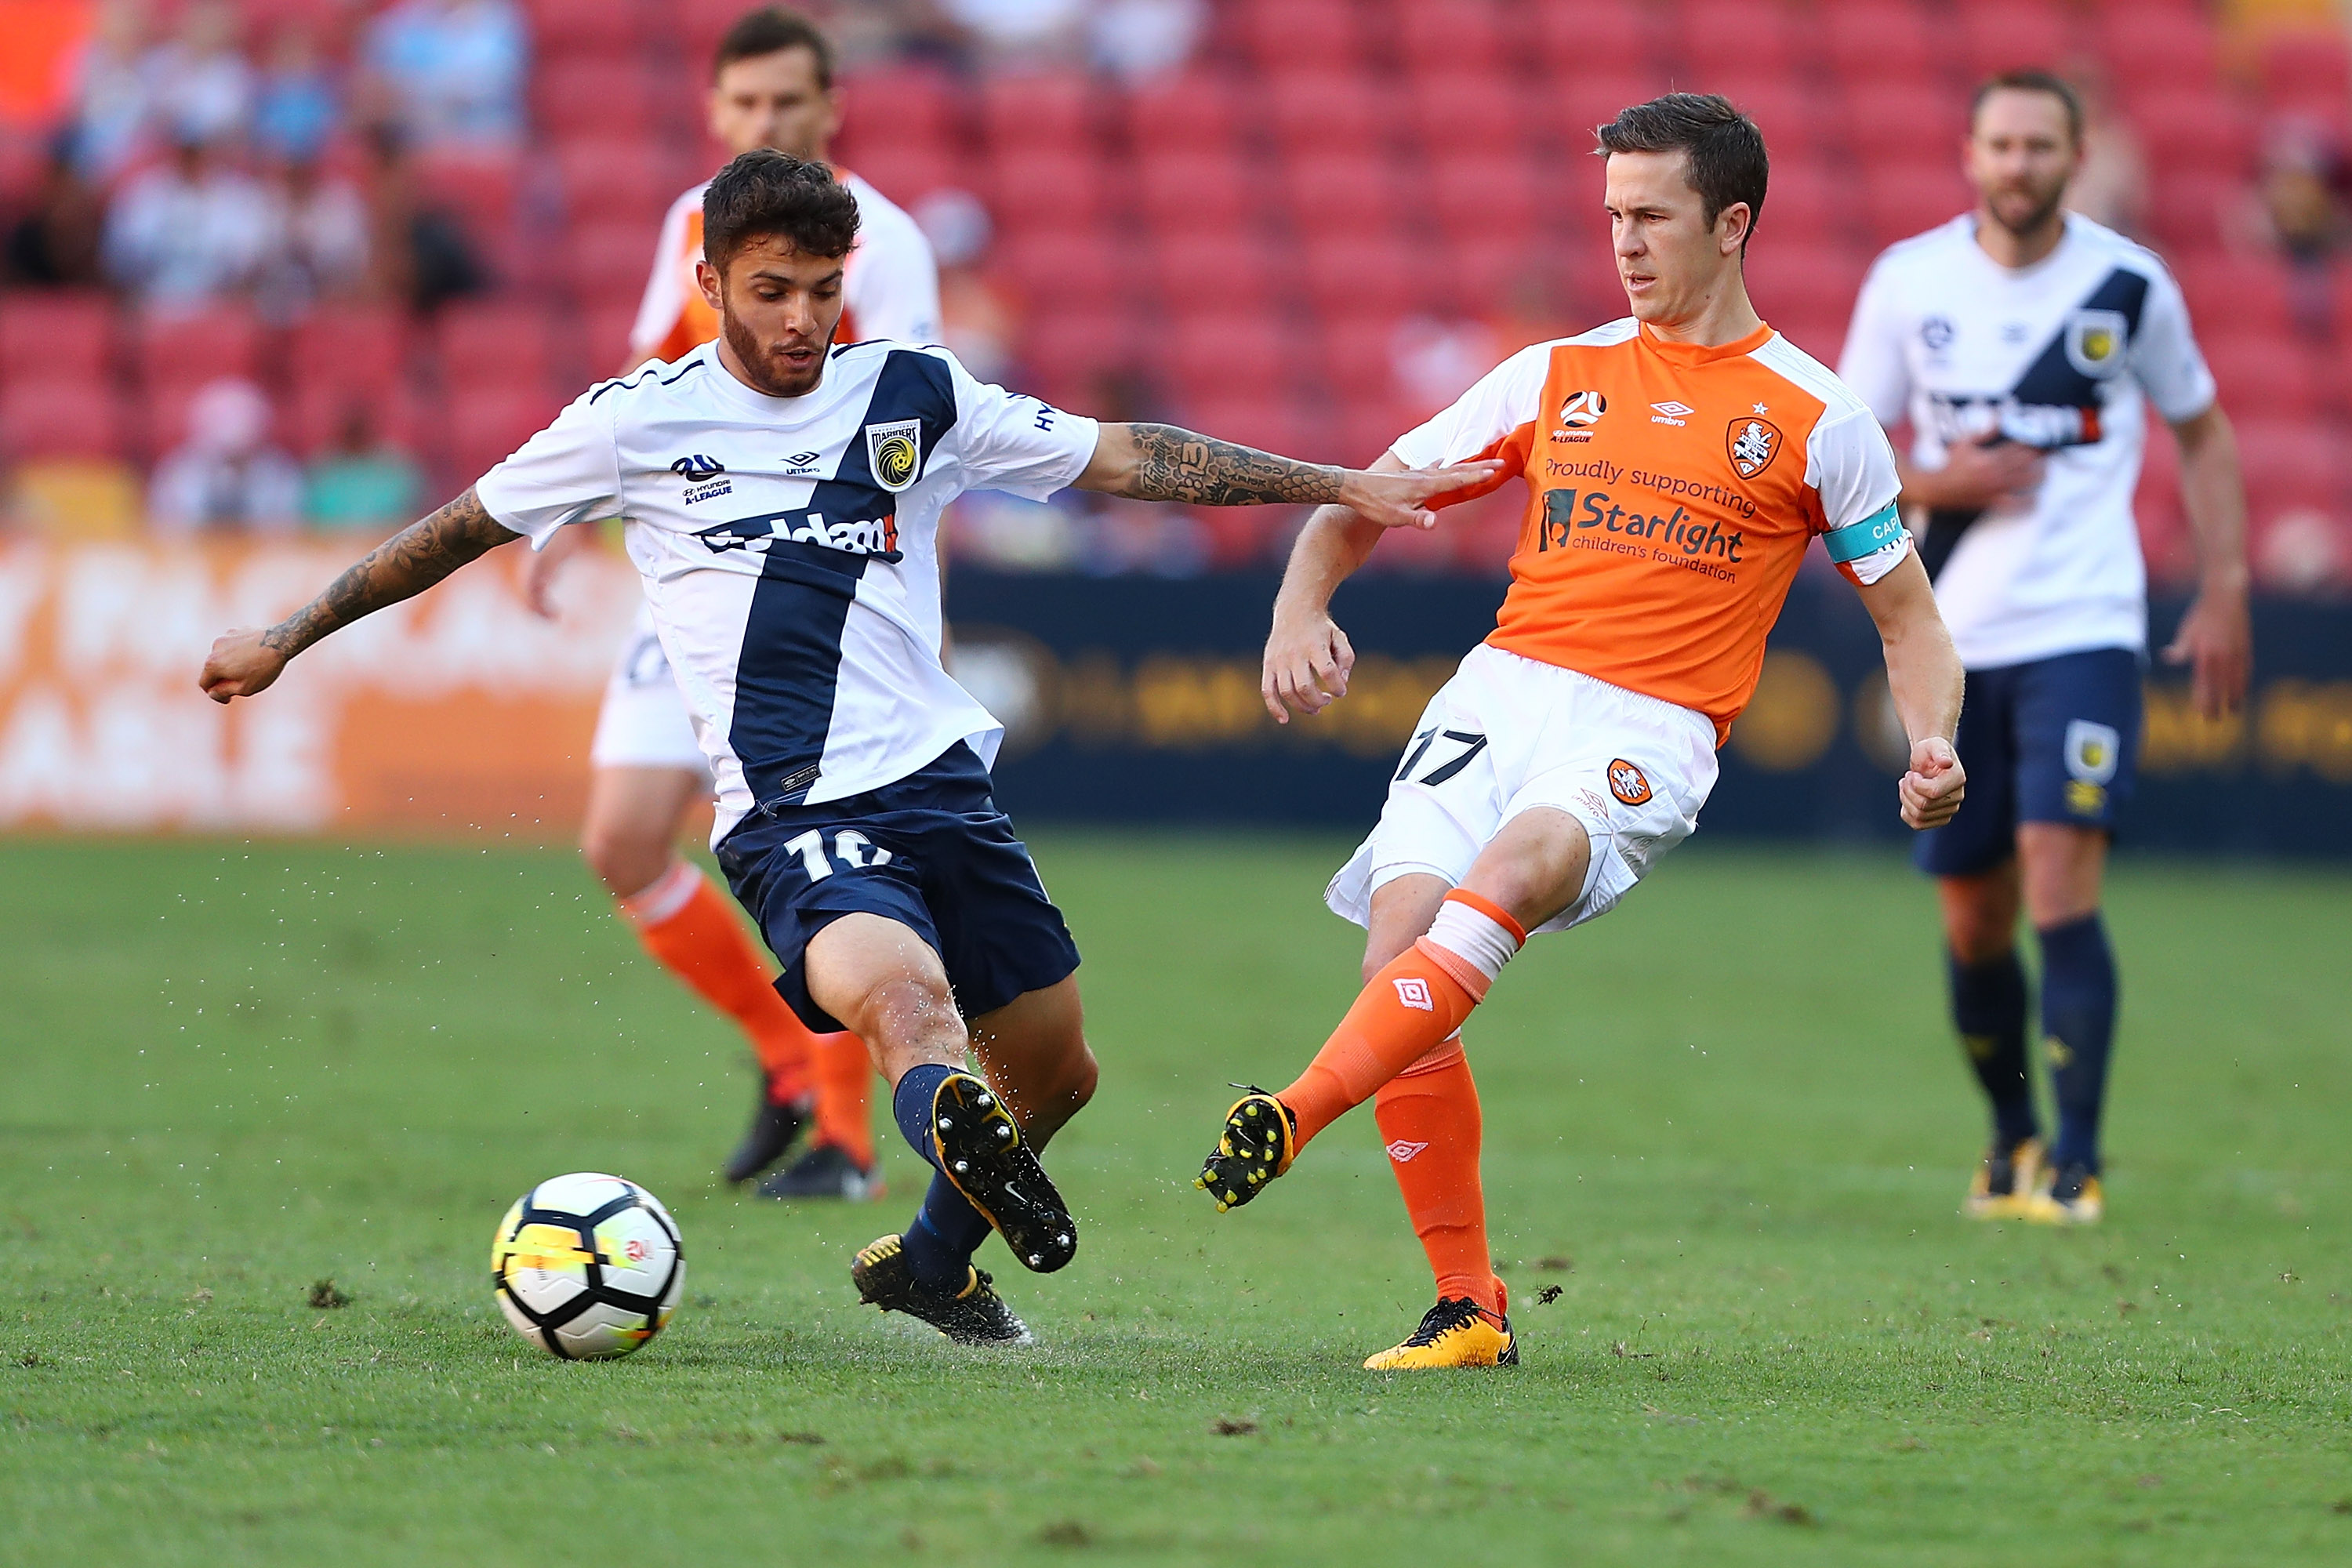 Matt McKay and Mariners' Danny De Silva on Sunday afternoon in Brisbane